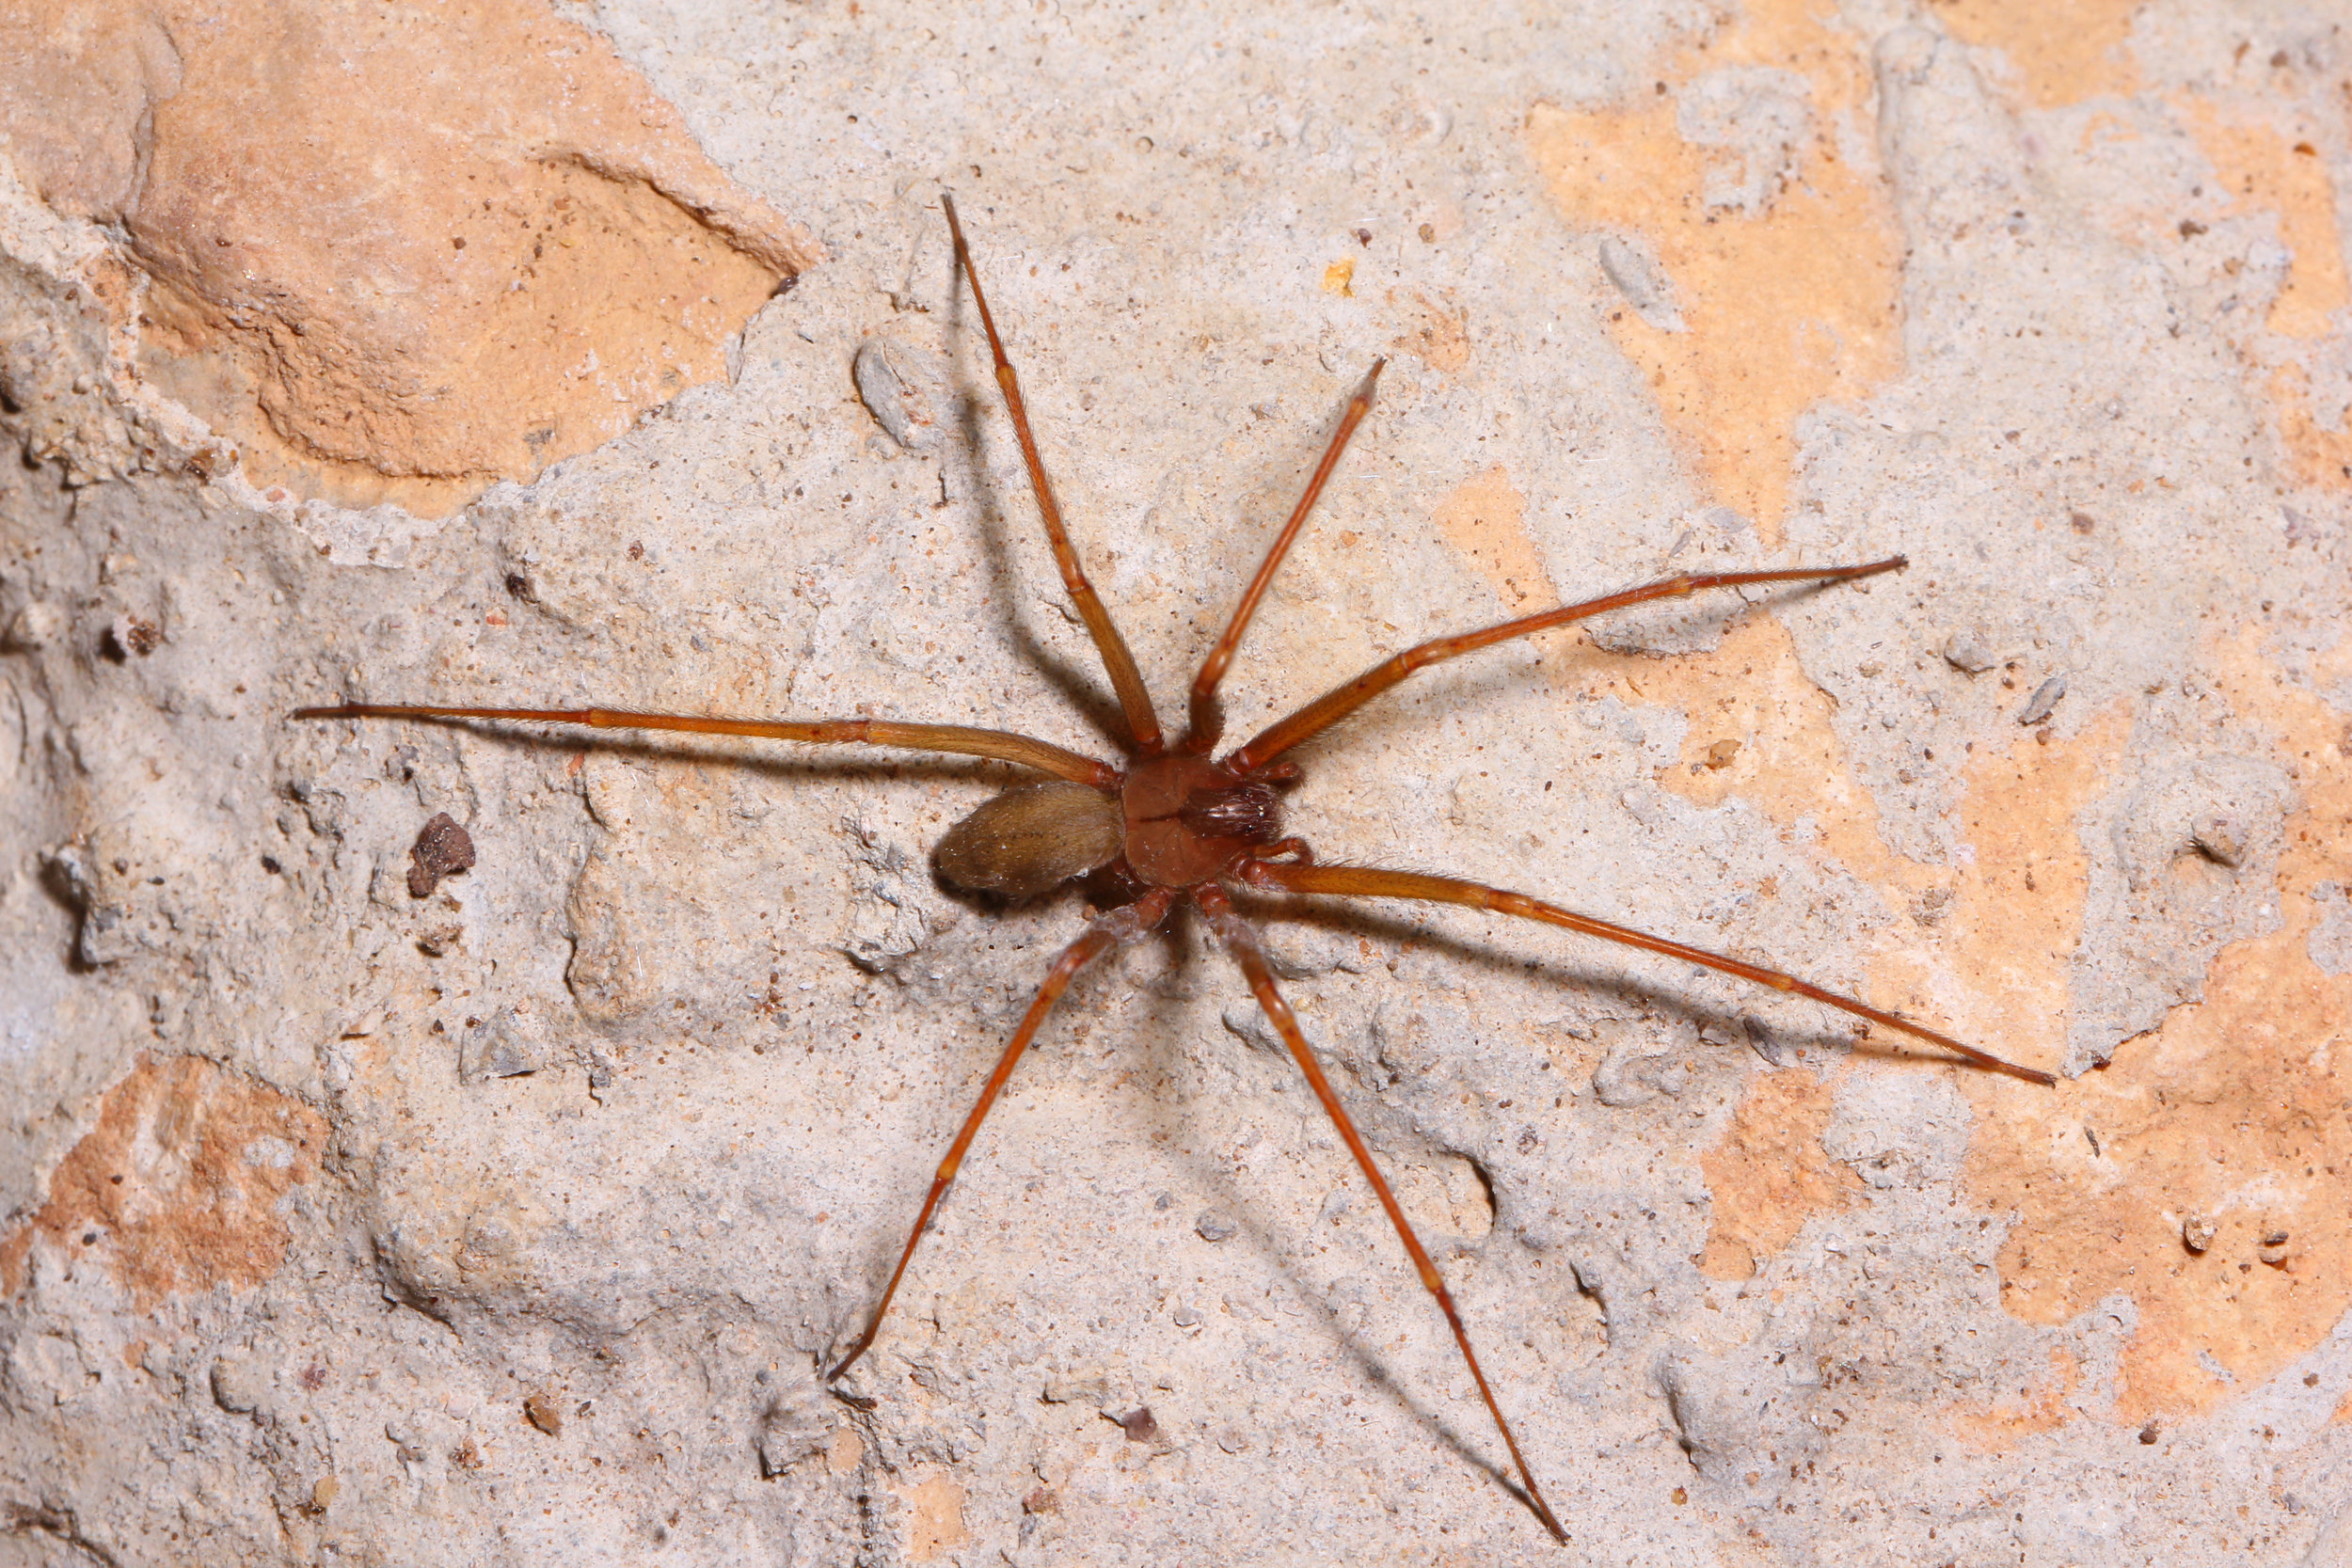 Brown Recluse Spiders -